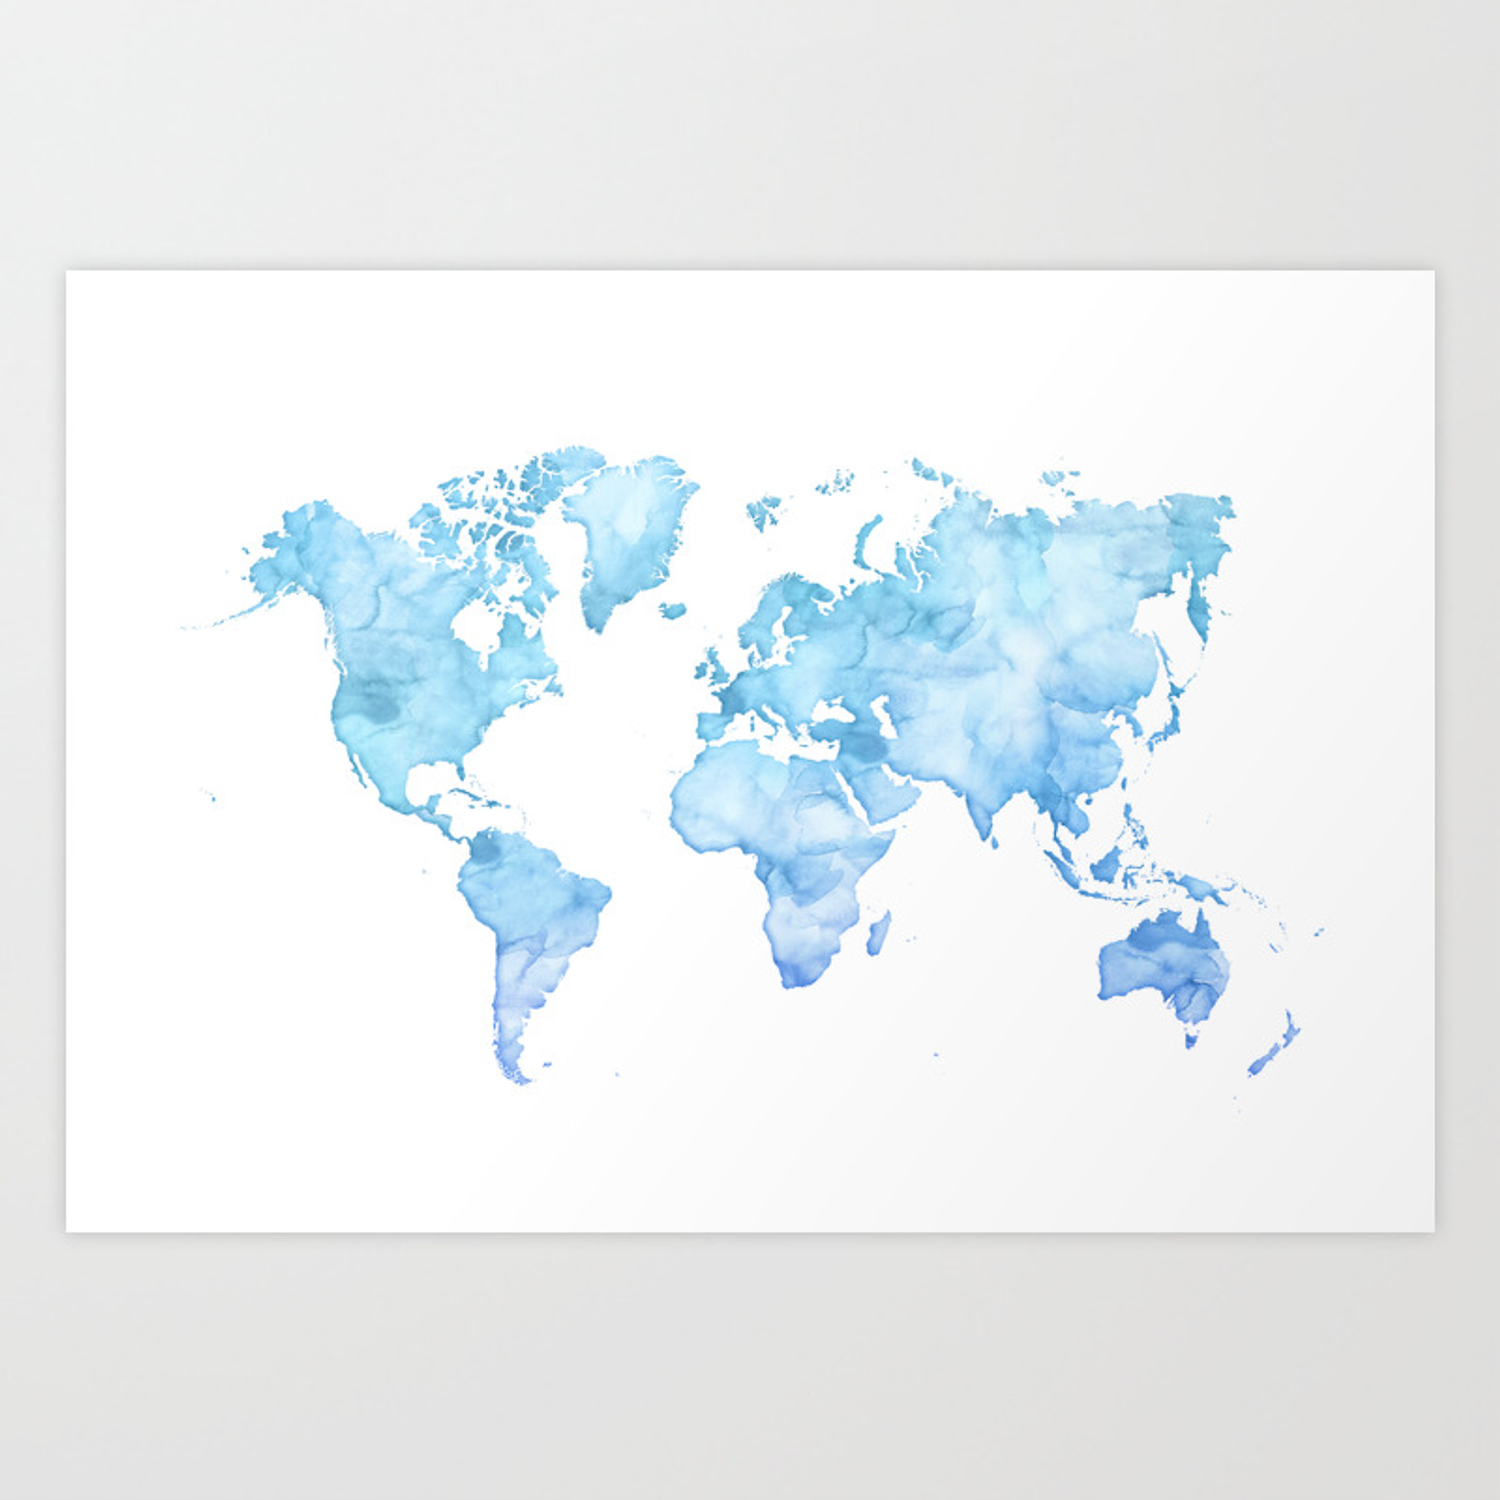 Light blue watercolor world map Art Print on national geographic world maps print, world map to edit, spring forward sign to print, cool world map print, world map to color, world printout, world map to size, world map to zoom, numbers to print, road map fabric with print, world atlas with latitude and longitude, world globe outline printable, latitude longitude world map print, world map to sketch, markers to print, search to print, congo print, world map to make, world map to label, large labeled world map print,